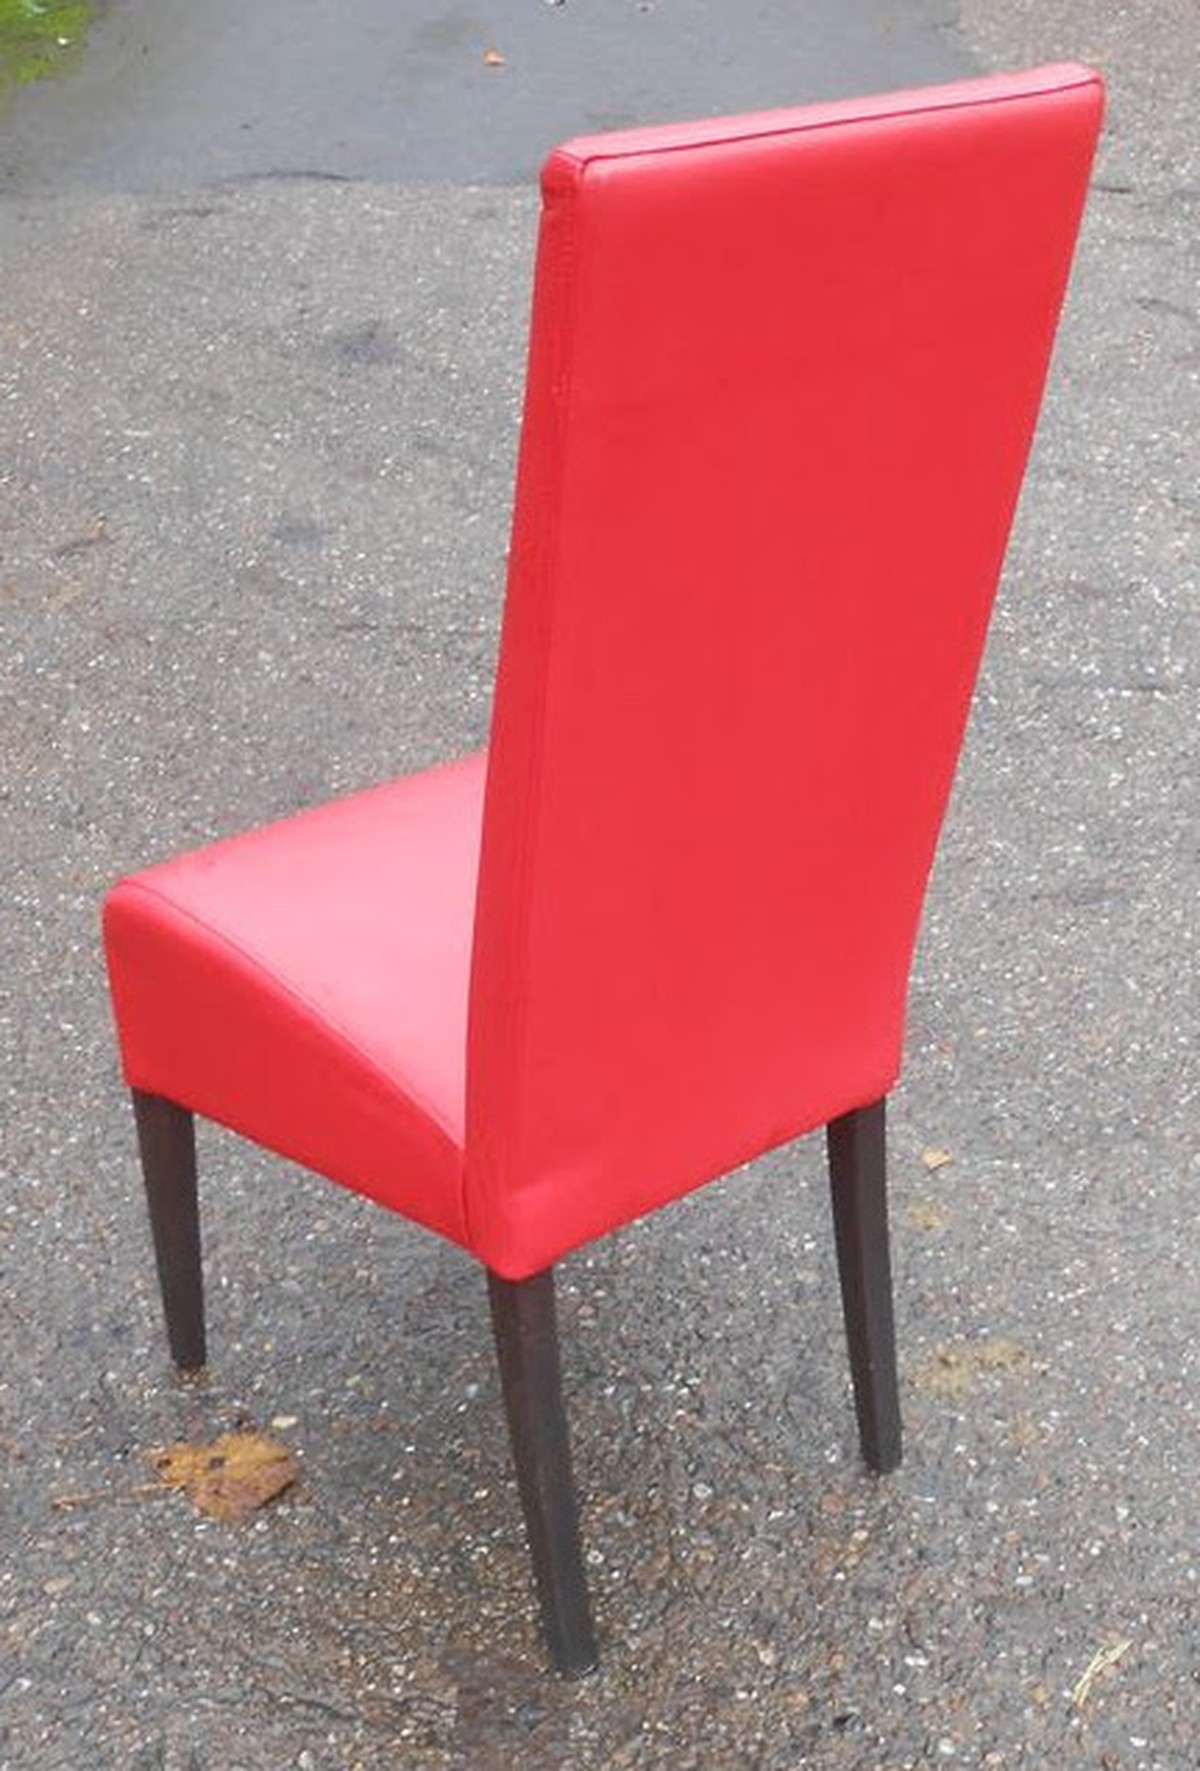 Secondhand Chairs and Tables  Restaurant Chairs  26x Red